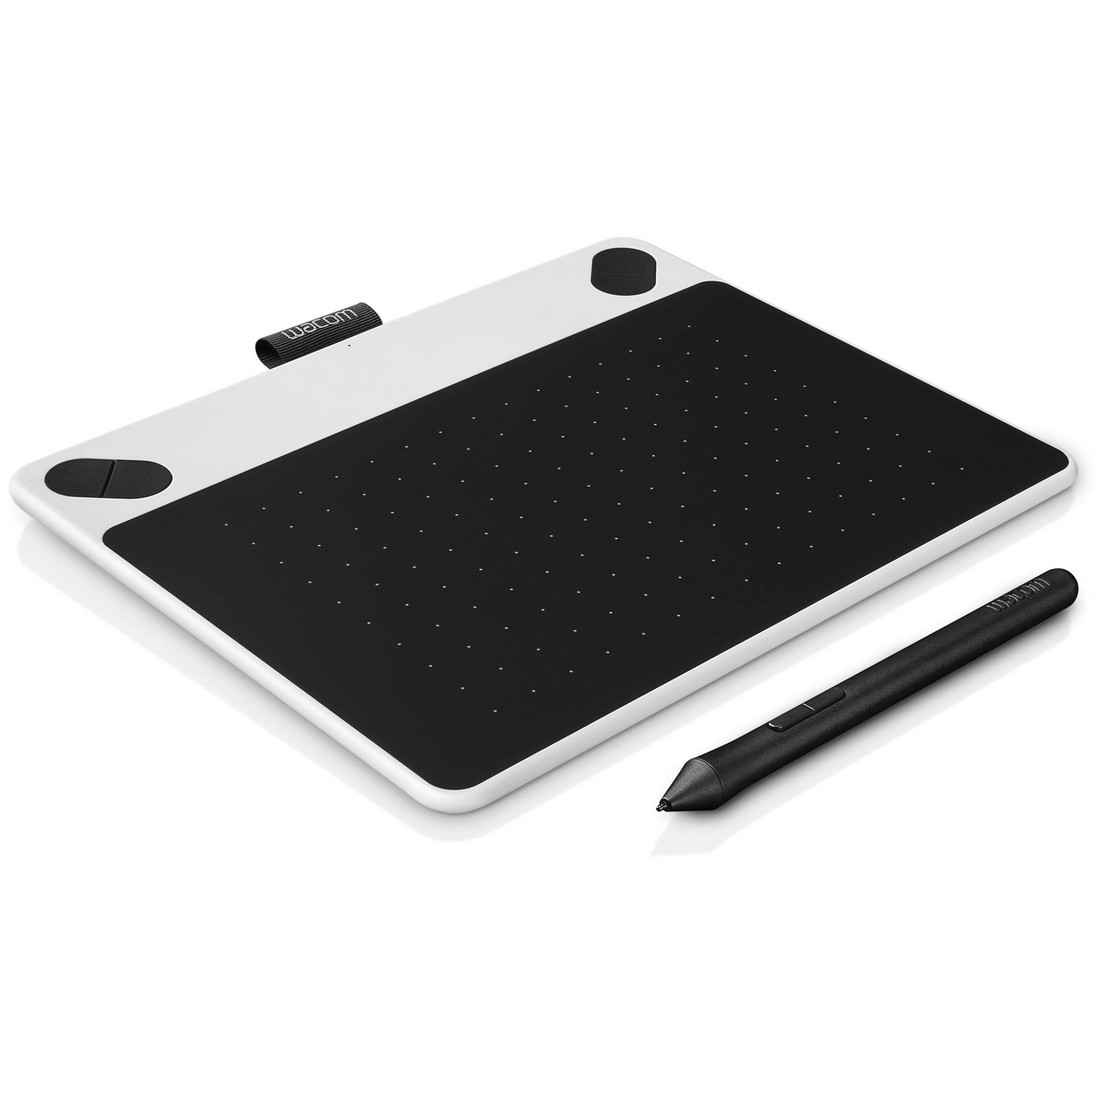 Графический планшет Wacom Intuos Draw Pen Small White (CTL-490DW-N) Белый/чёрный